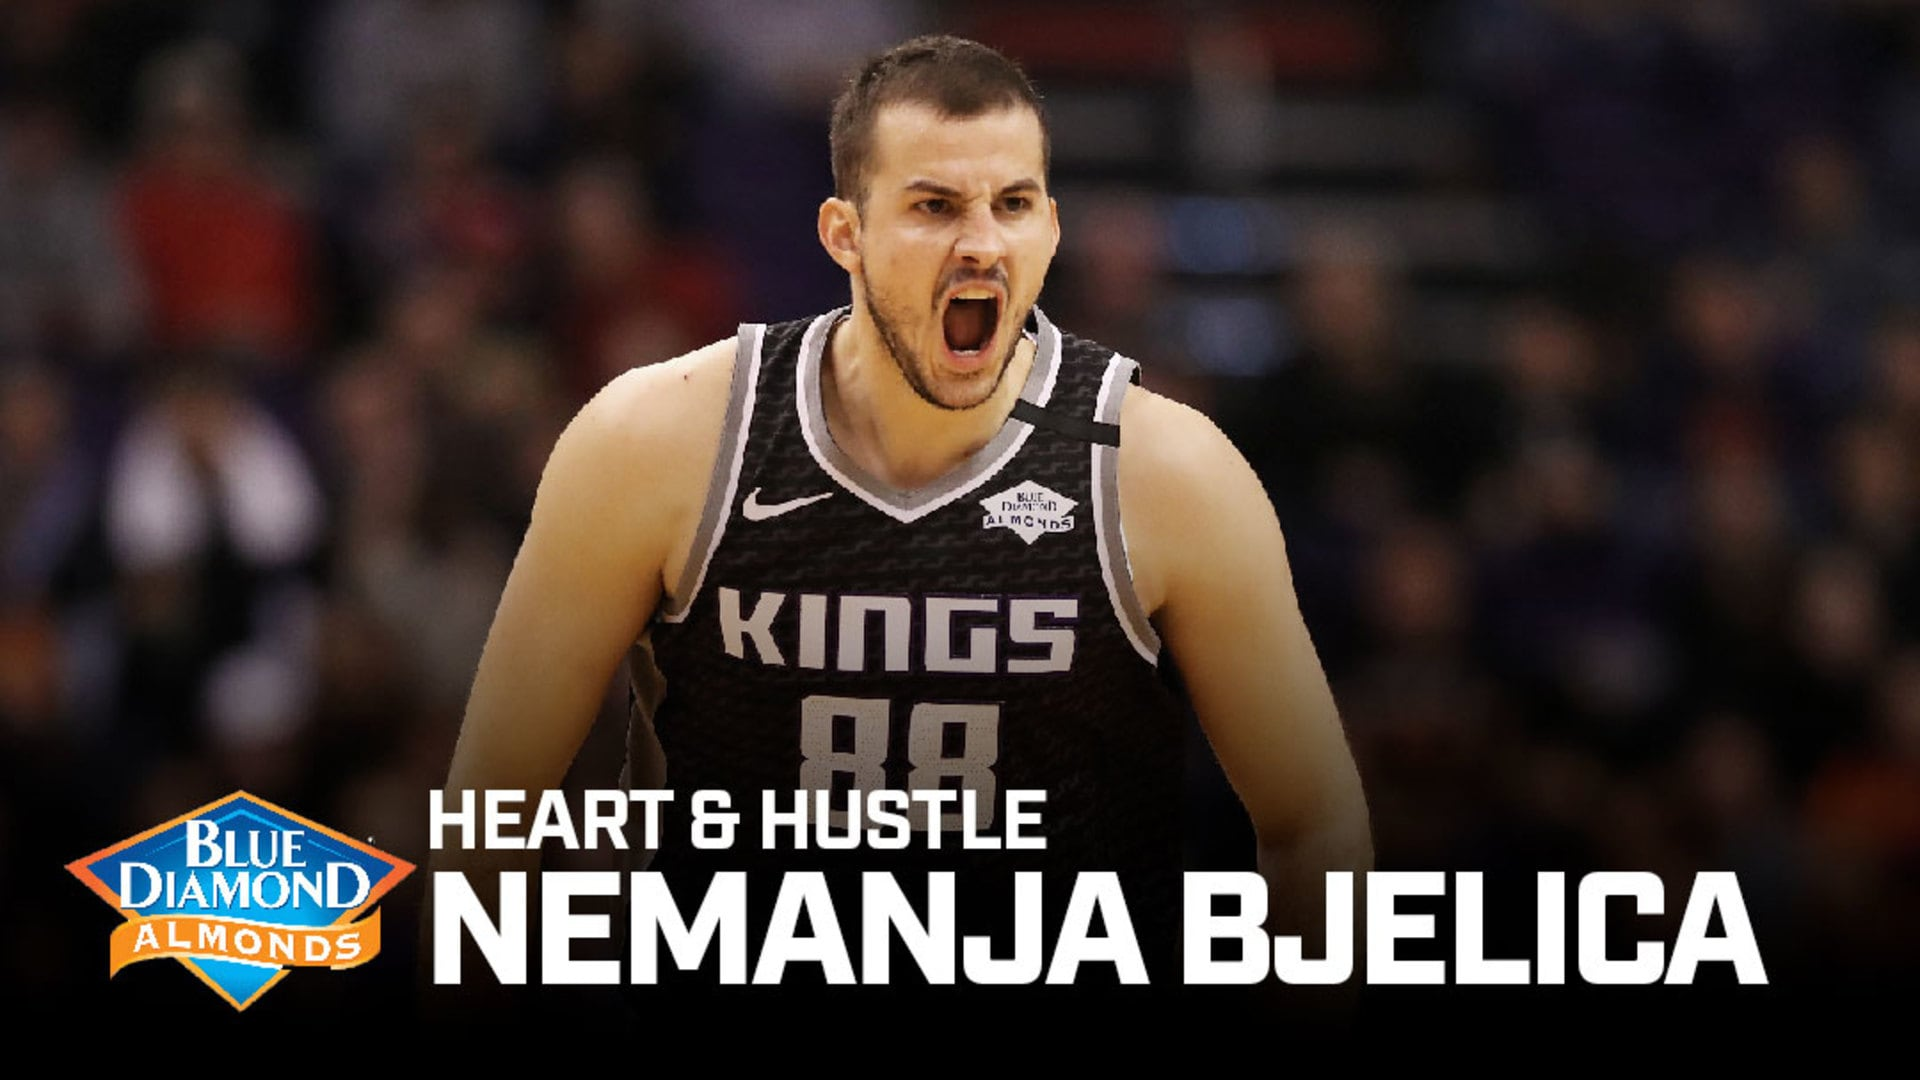 Blue Diamond Heart & Hustle Player of the Month | December 2019